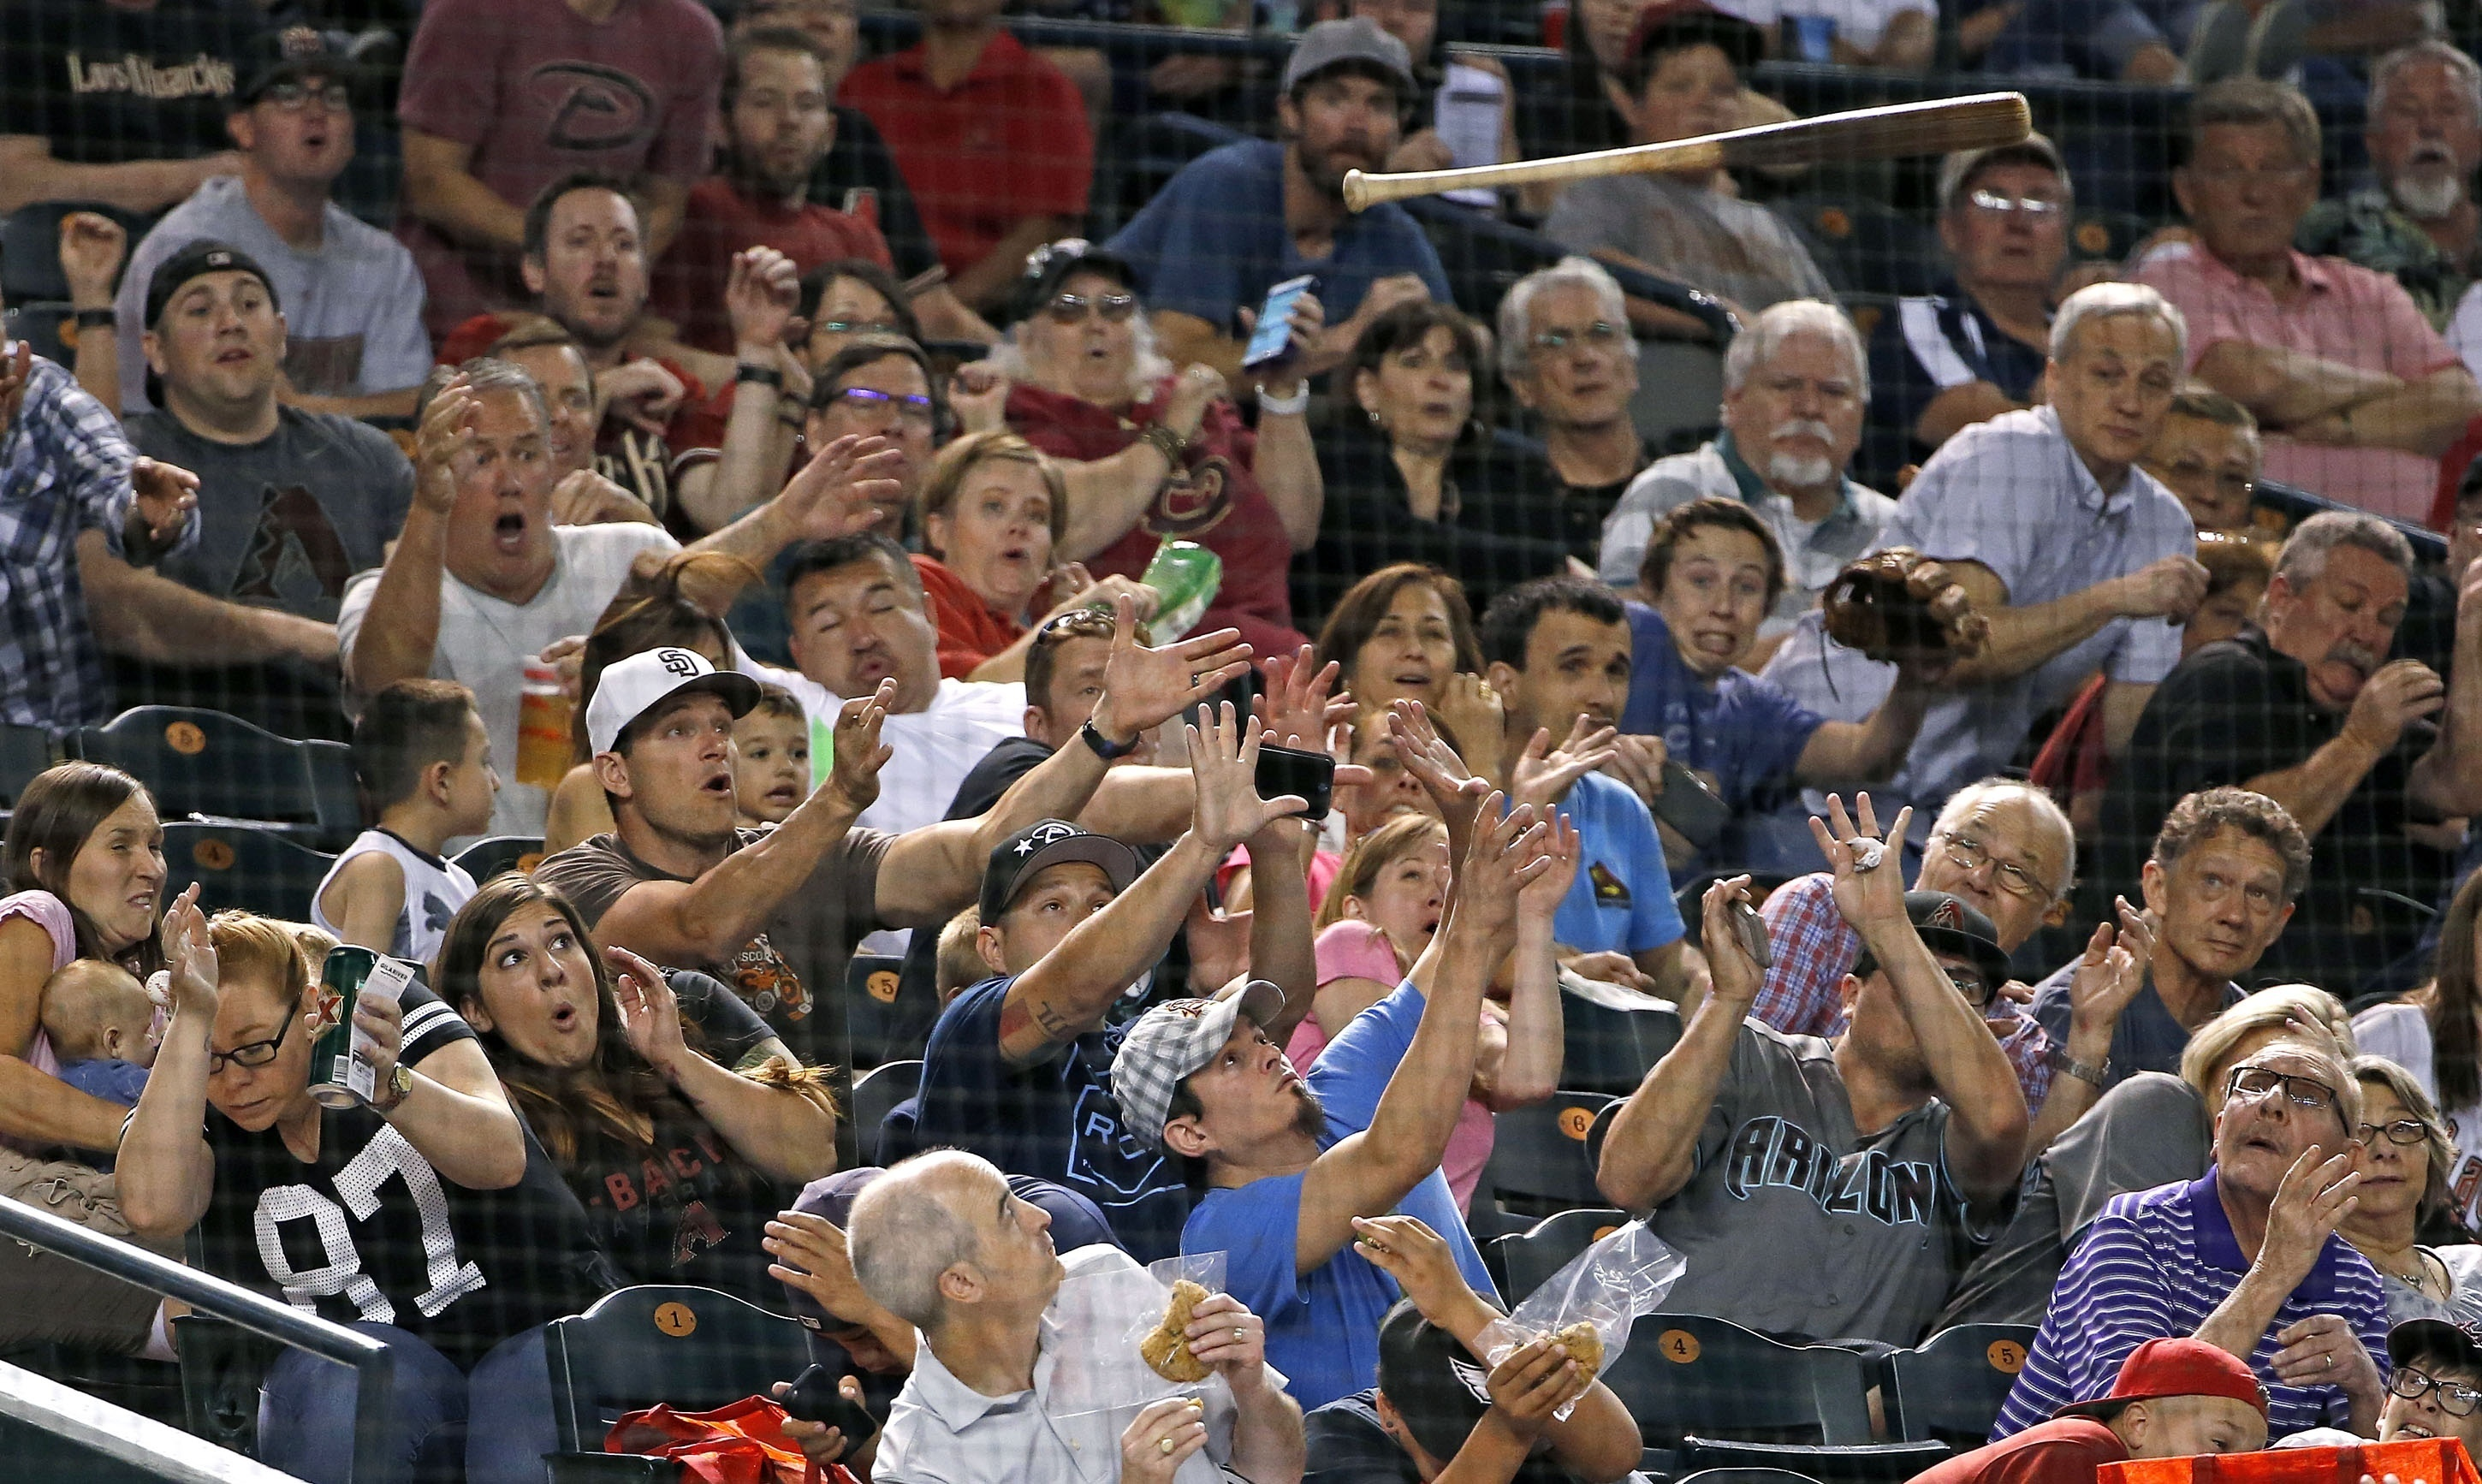 Fans show a variety of reactions after San Diego Padres' Derek Norris lost control of his bat and it flew toward the stands during the fifth inning of the Padres' baseball game against the Arizona Diamondbacks on Saturday, May 28, 2016, in Phoenix. (AP Ph